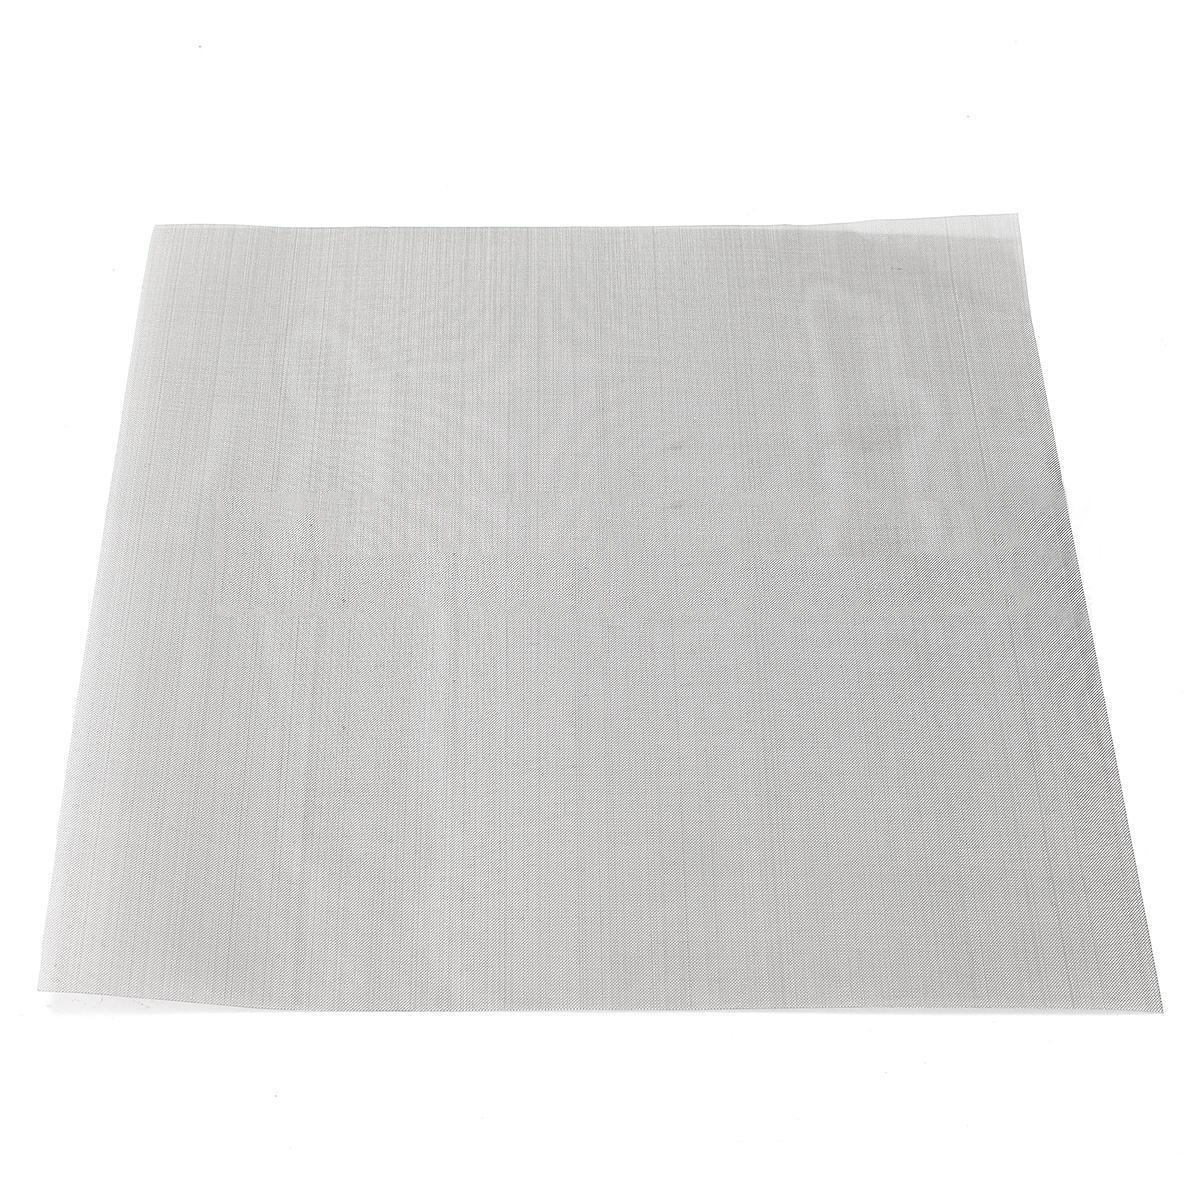 Mayitr 1pc 304 Stainless Steel Woven Wire Mesh Filtration #60 Cloth Screen Filter 30x30cm мужская цепь магия золота золотая цепочка mg26035 65